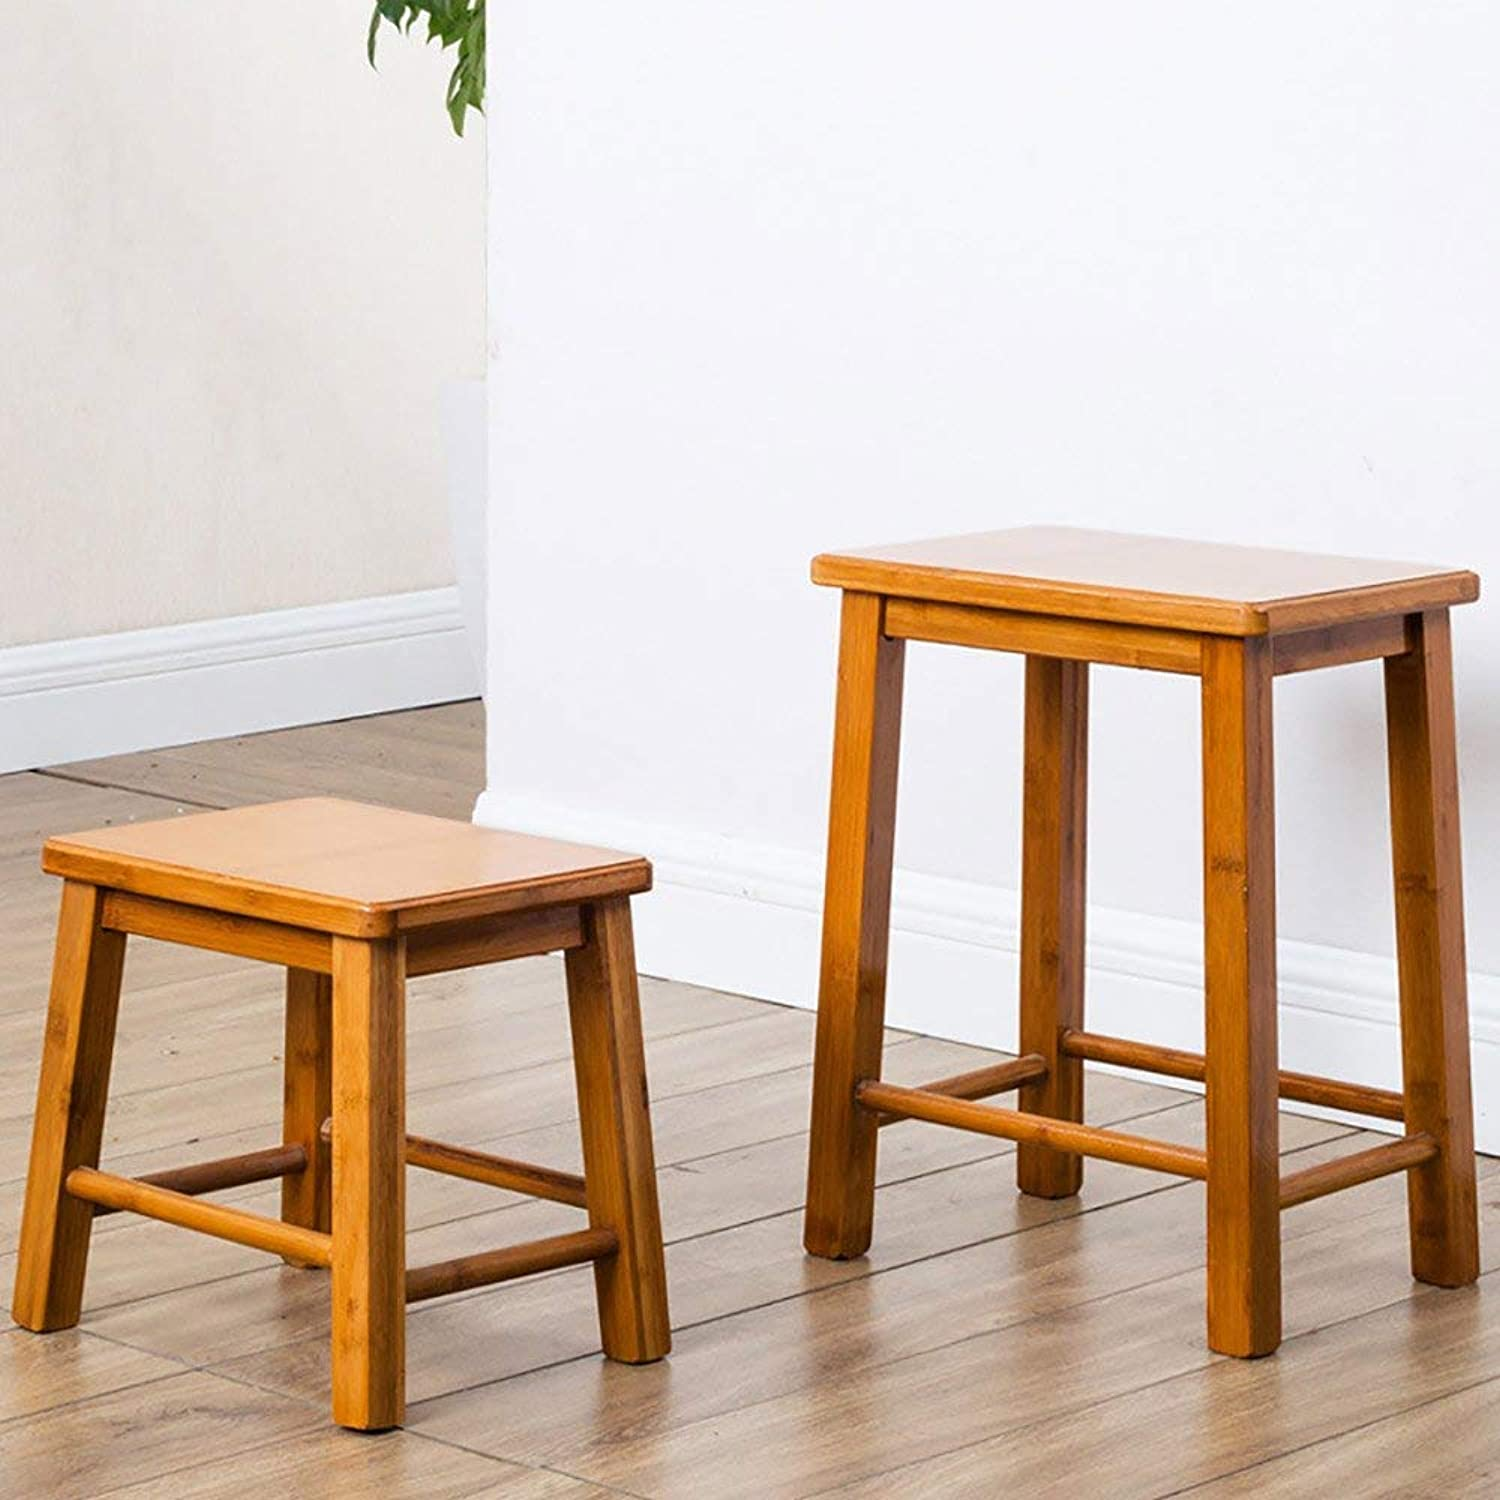 JZX Small Bamboo Bench, Adult Pedal Stool